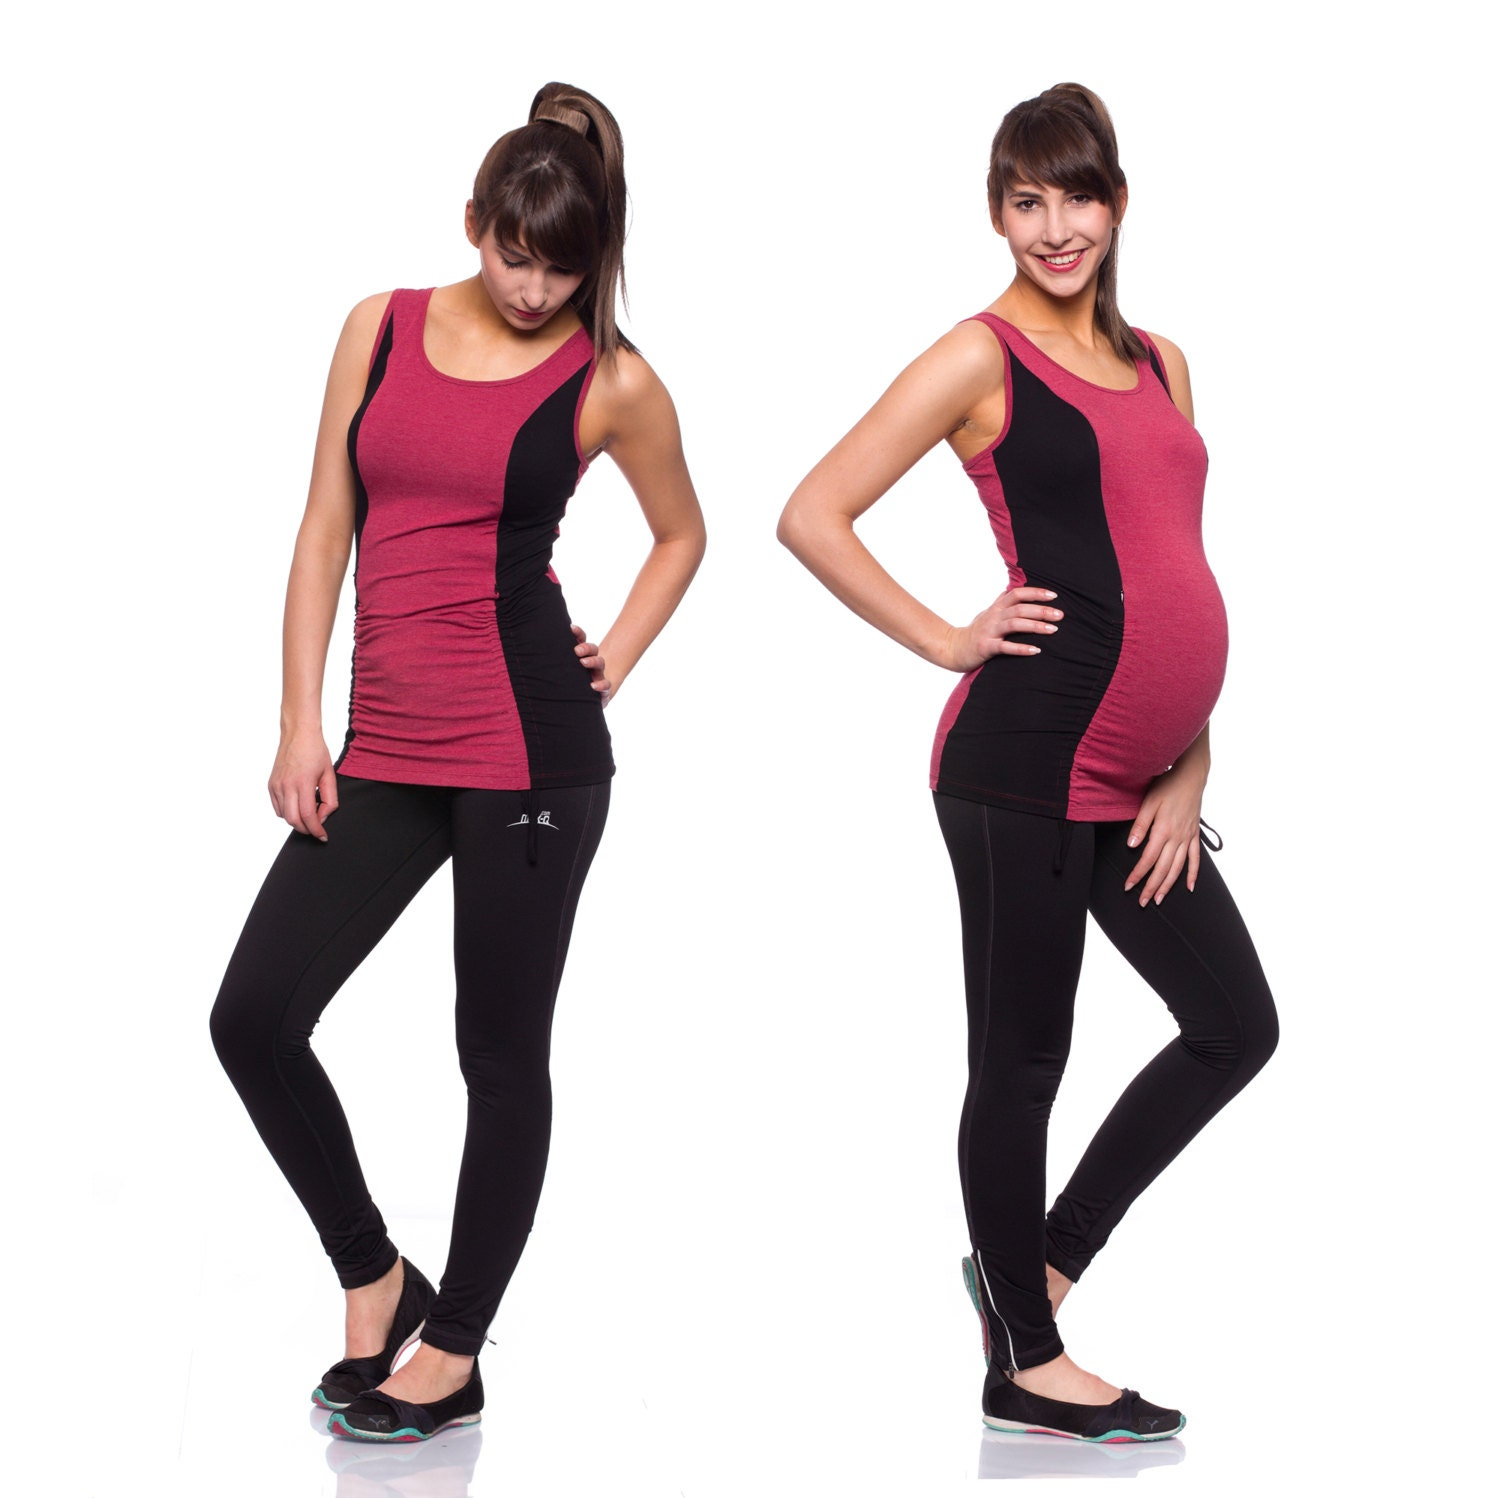 Find great deals on eBay for maternity athletic clothing. Shop with confidence.